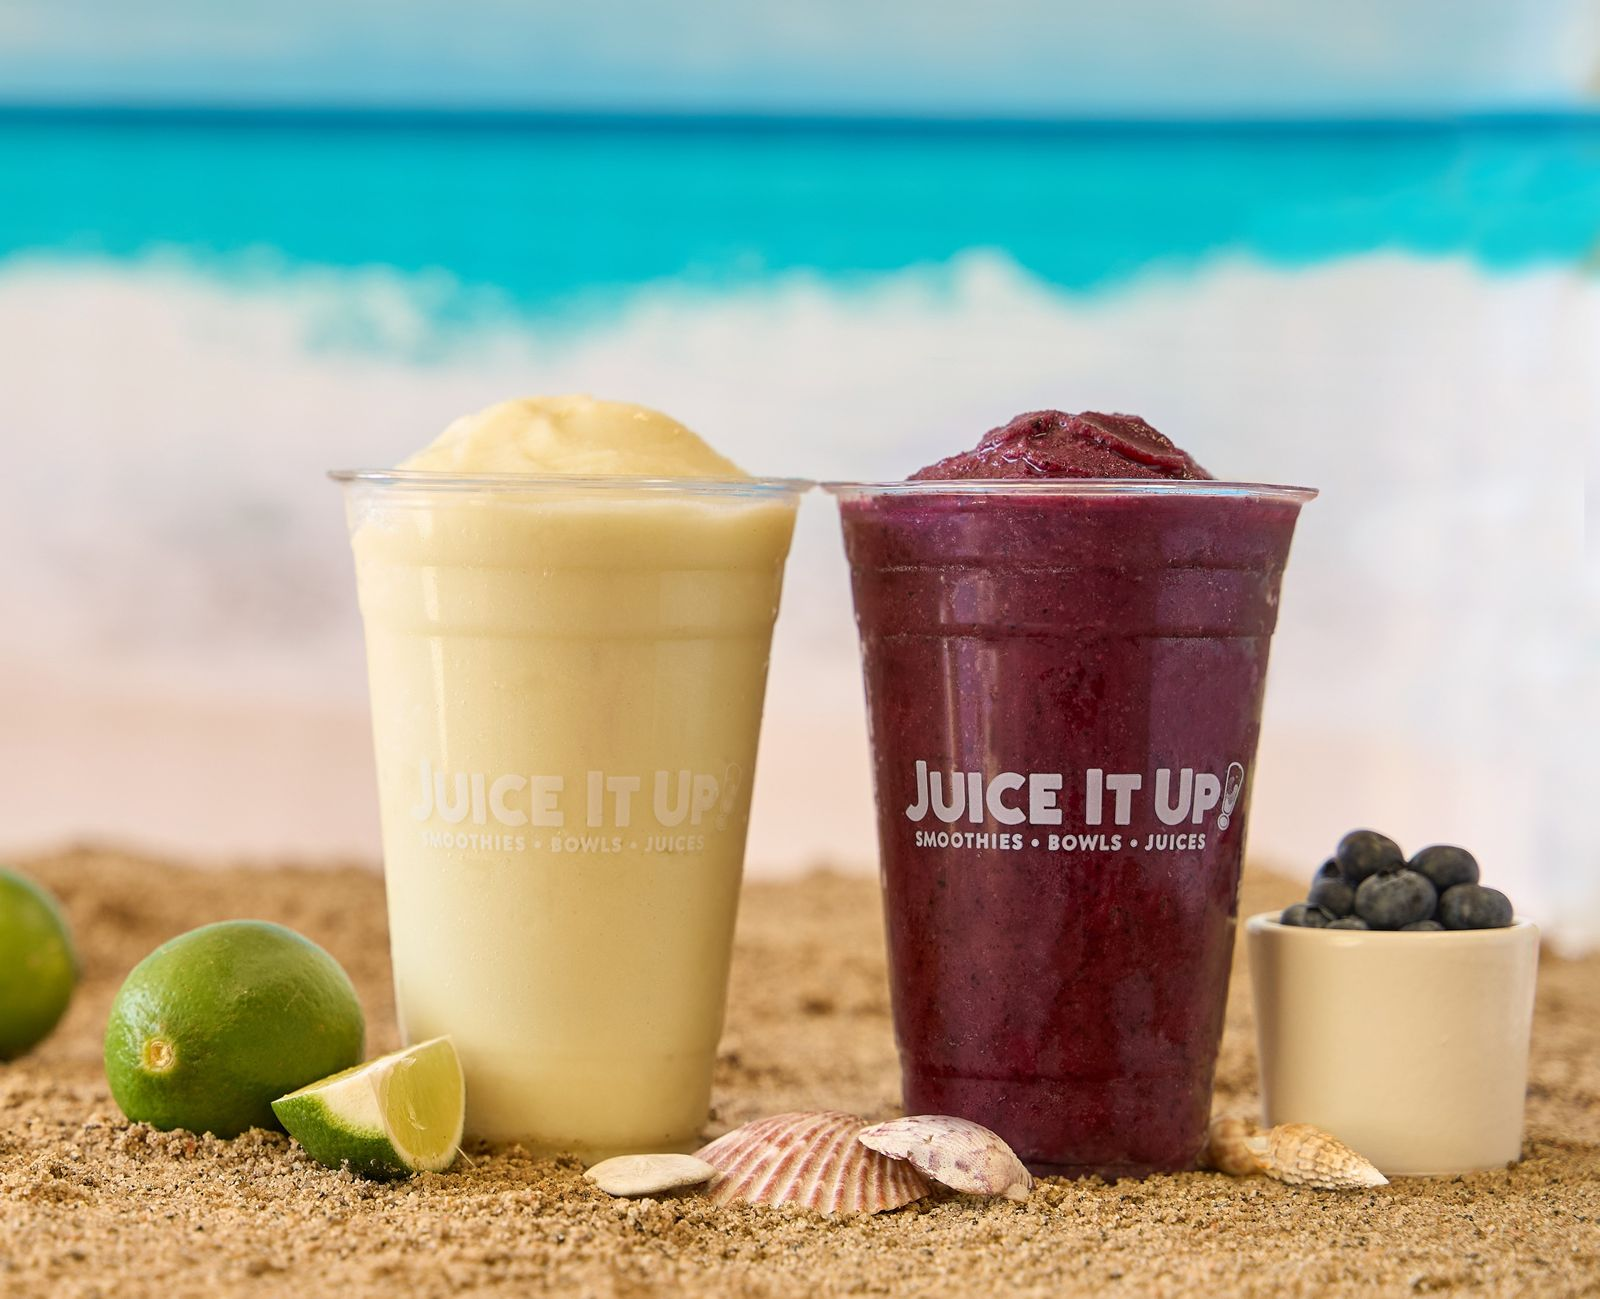 Juice It Up!'s NEW Limeade Squeeze and Blueberry Limeade Smoothies Now Available Through Sept. 21